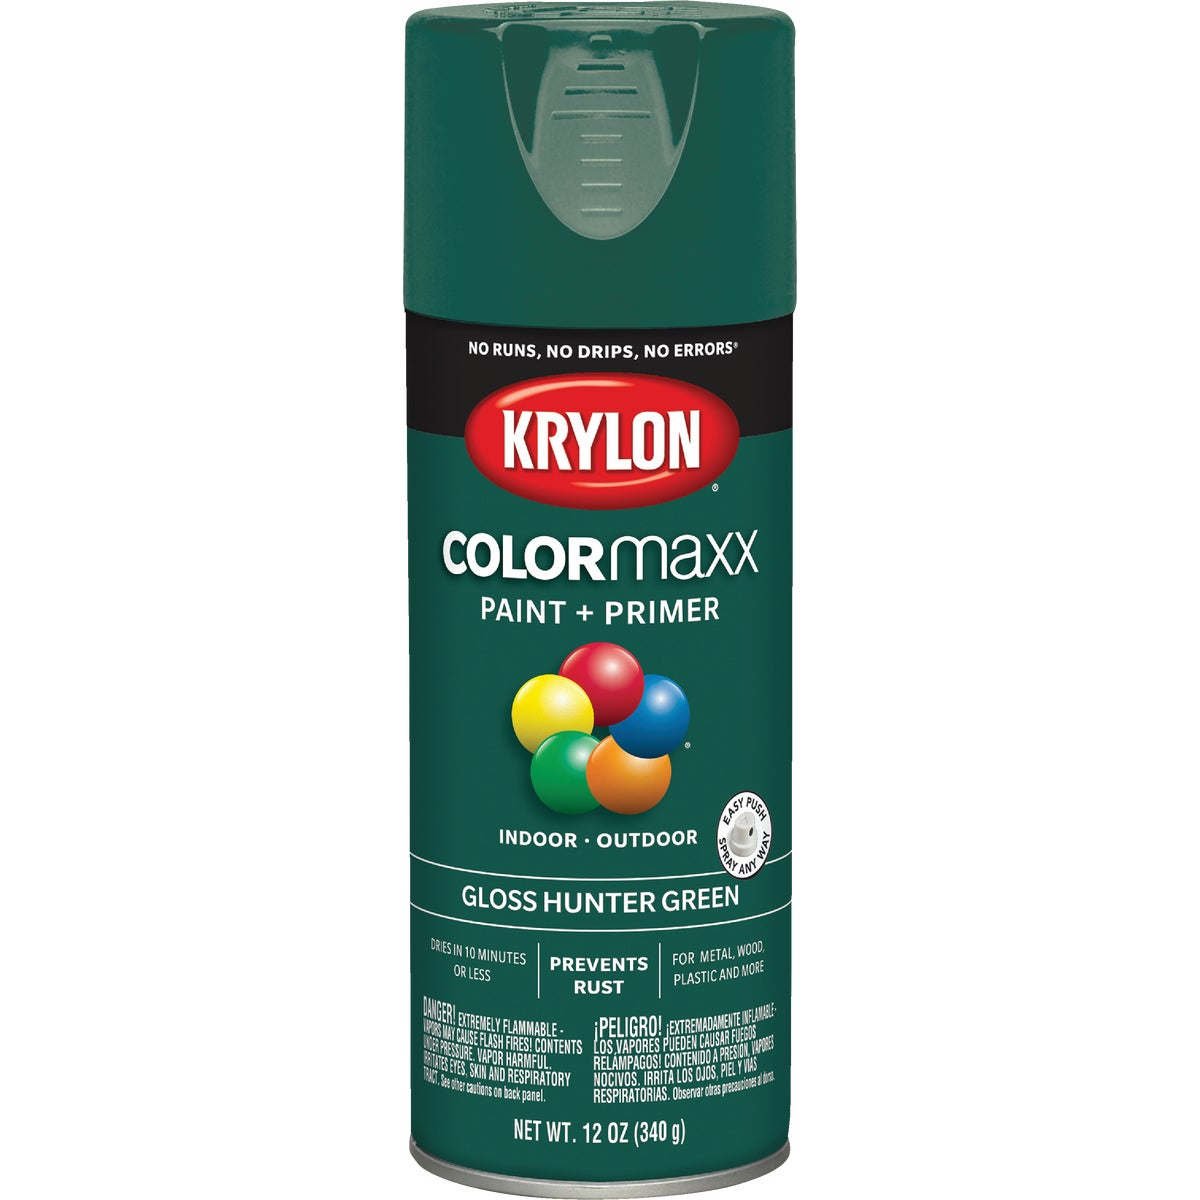 GLS HNTR GRN SPRAY PAINT - 52001 by Krylon/consumer Div